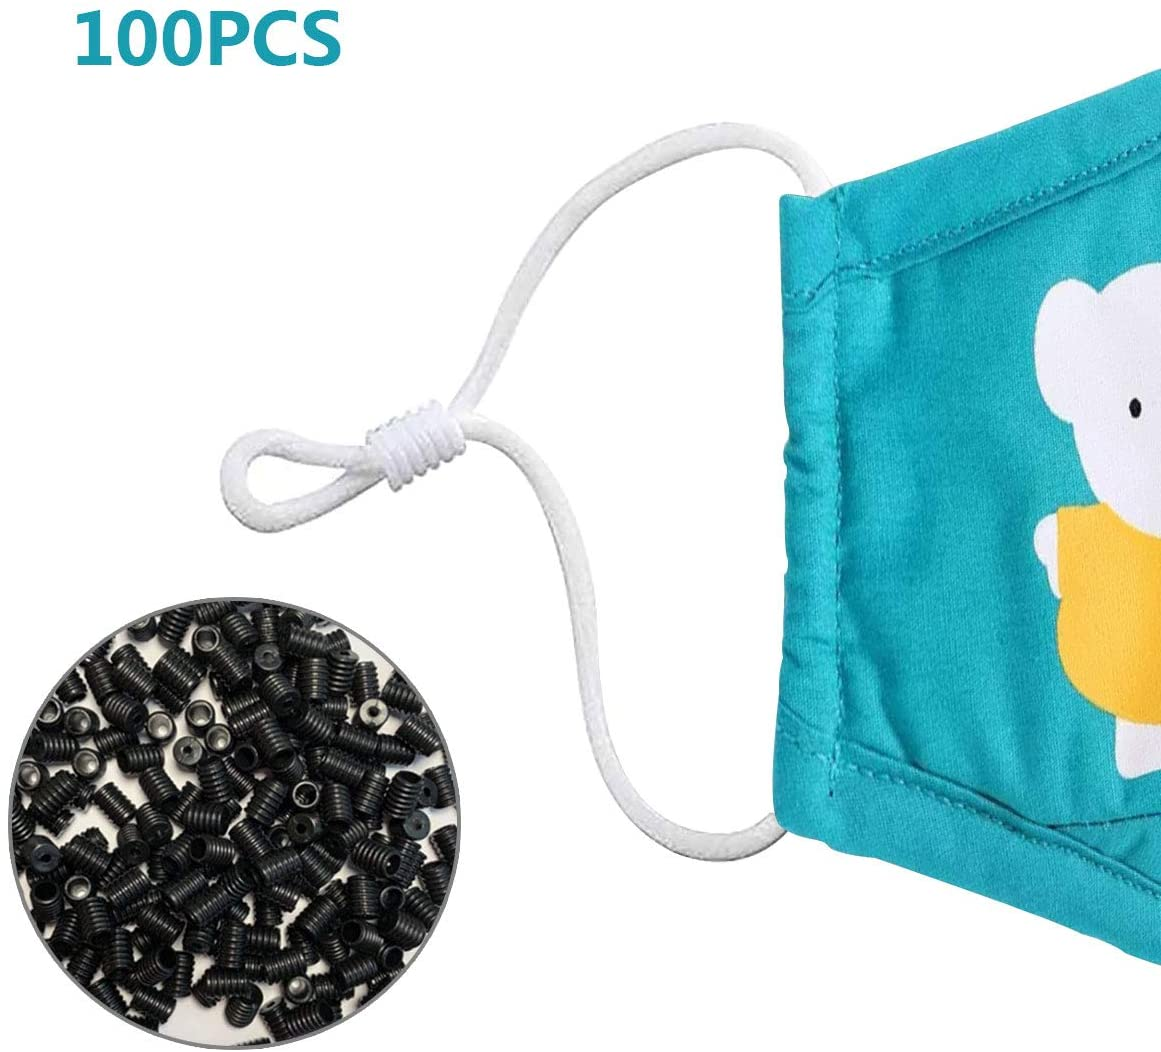 Soft Cord Locks,Toggles for Drawstrings Elastic Cord Adjuster Non Slip Stopper Round Elastic Adjustment Buckle(100PCS Black)